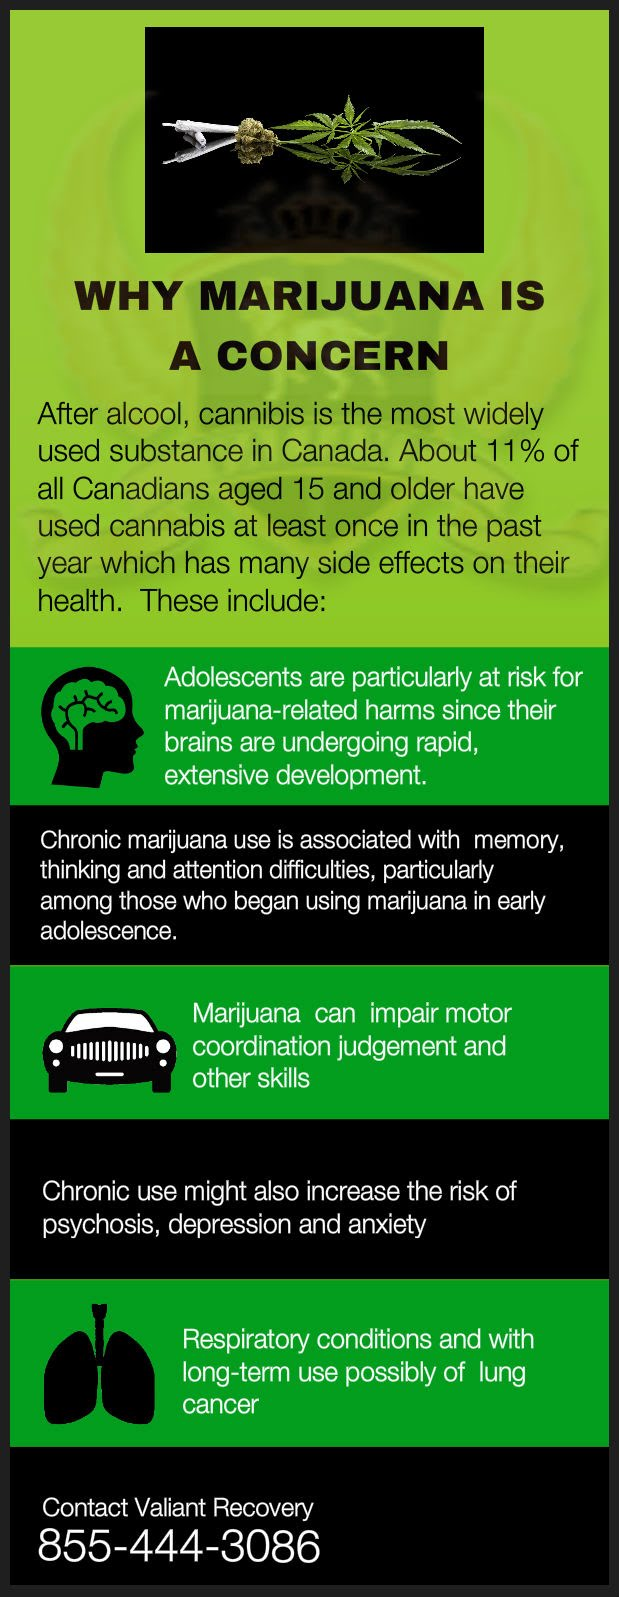 Why Marijuana is a Concern in Canada - infographic